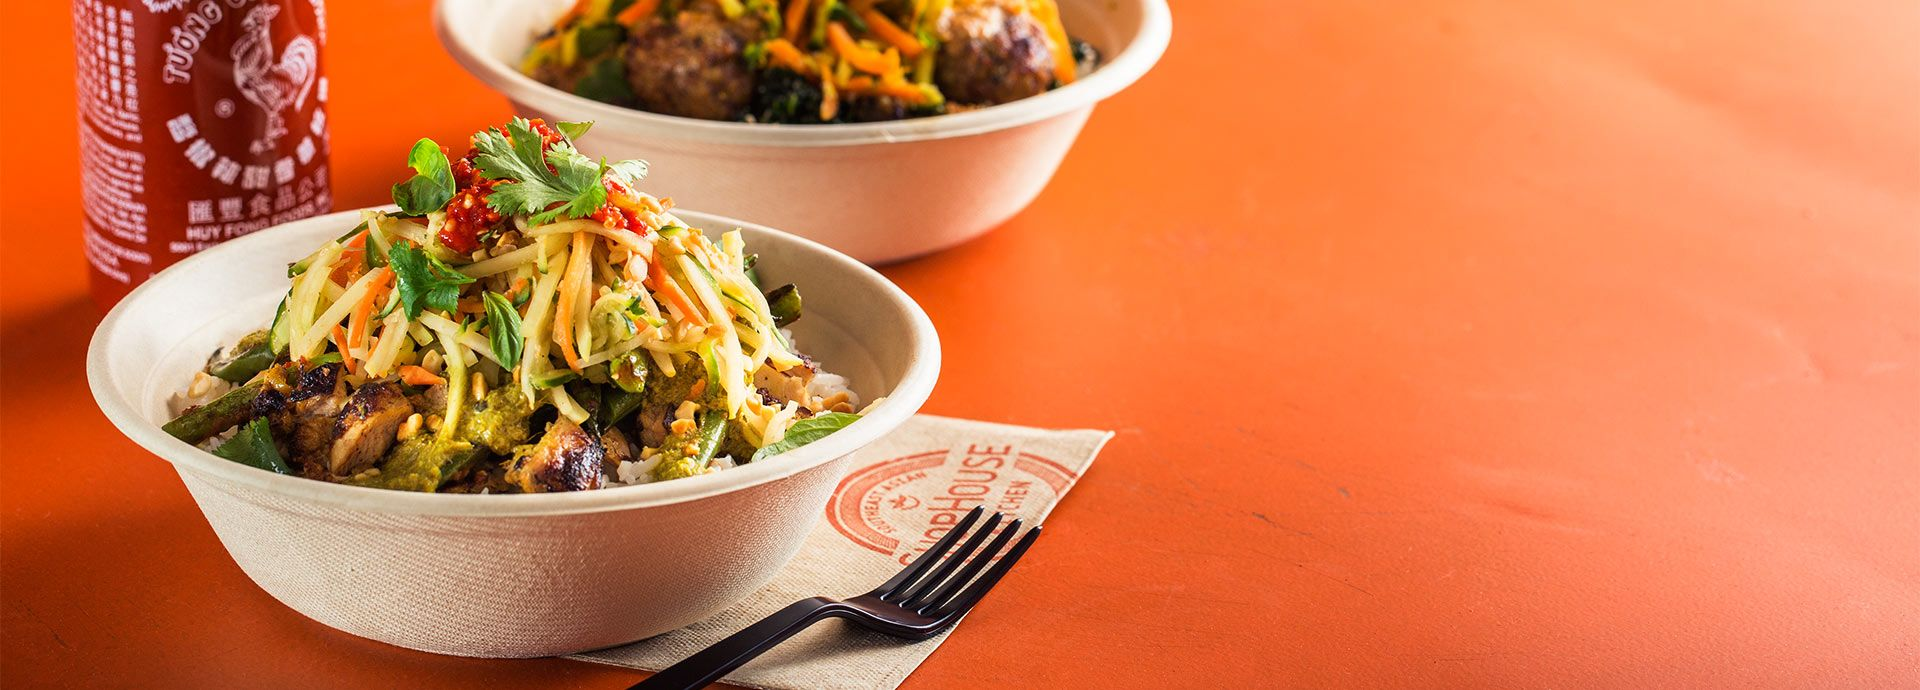 Shophouse Kitchen bowl with Sriracha sauce in background Food 1920x690